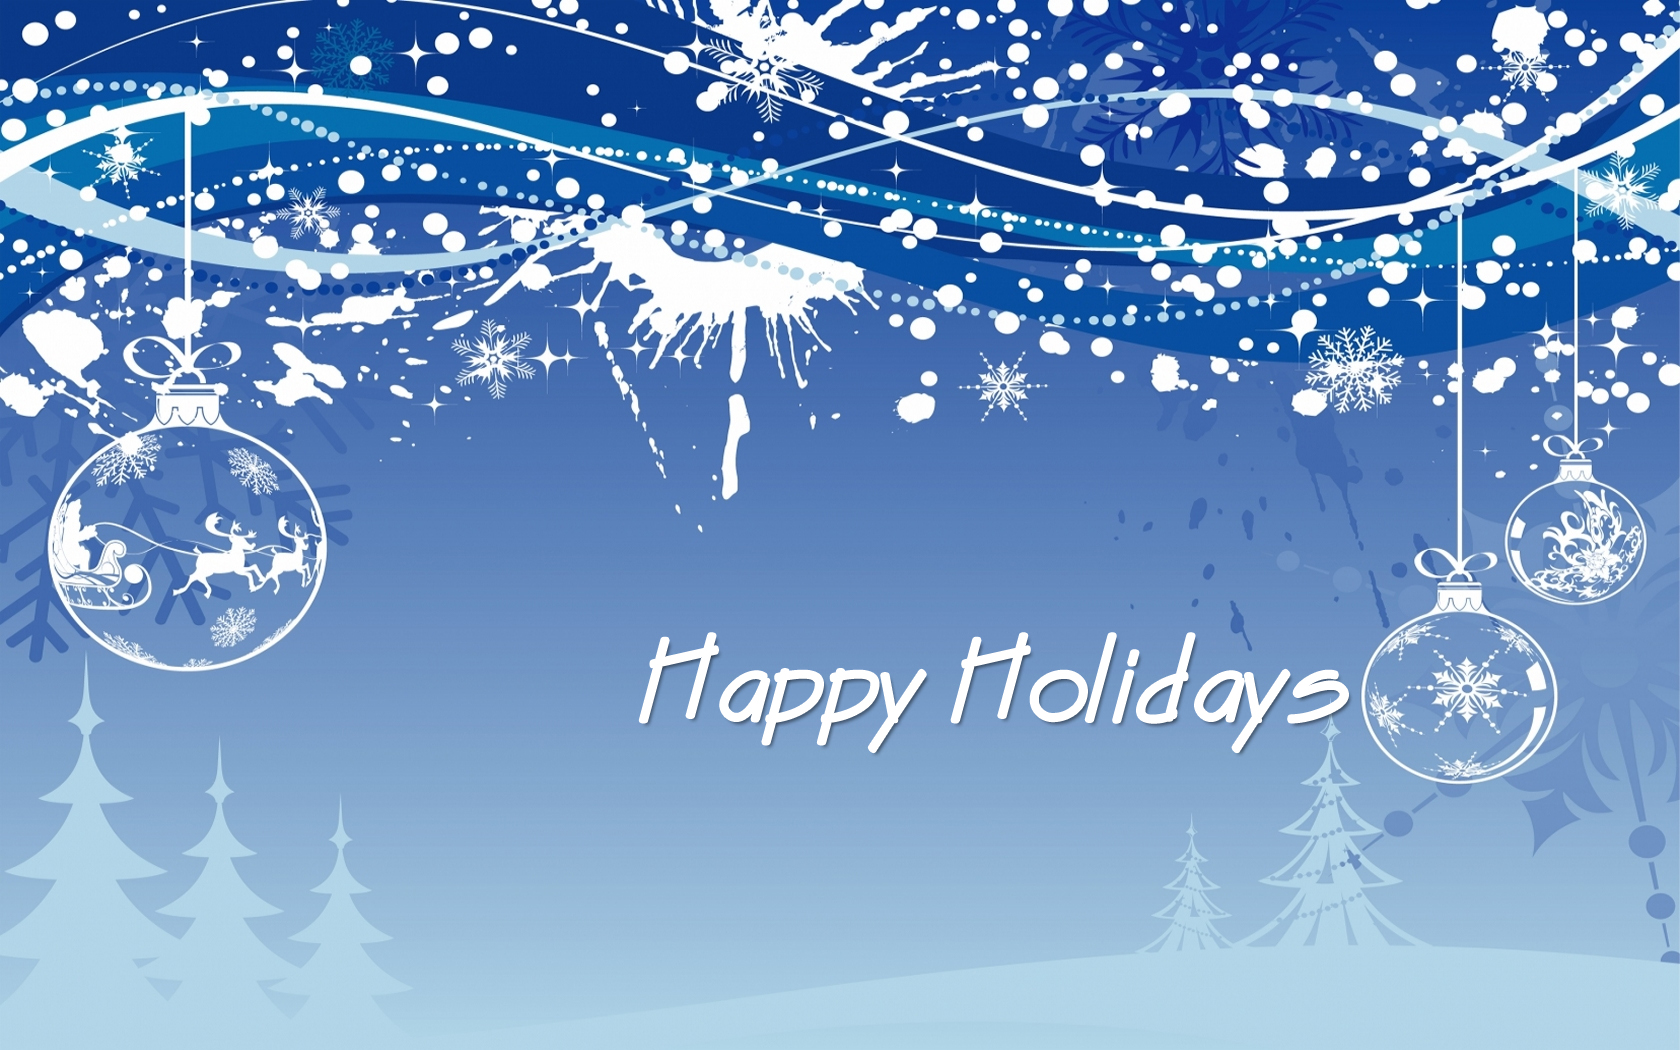 Popular 2014 Holiday Messages Homes Happenings Happy Holidays Message To Staff Happy Holidays Messages Business inspiration Happy Holidays Message